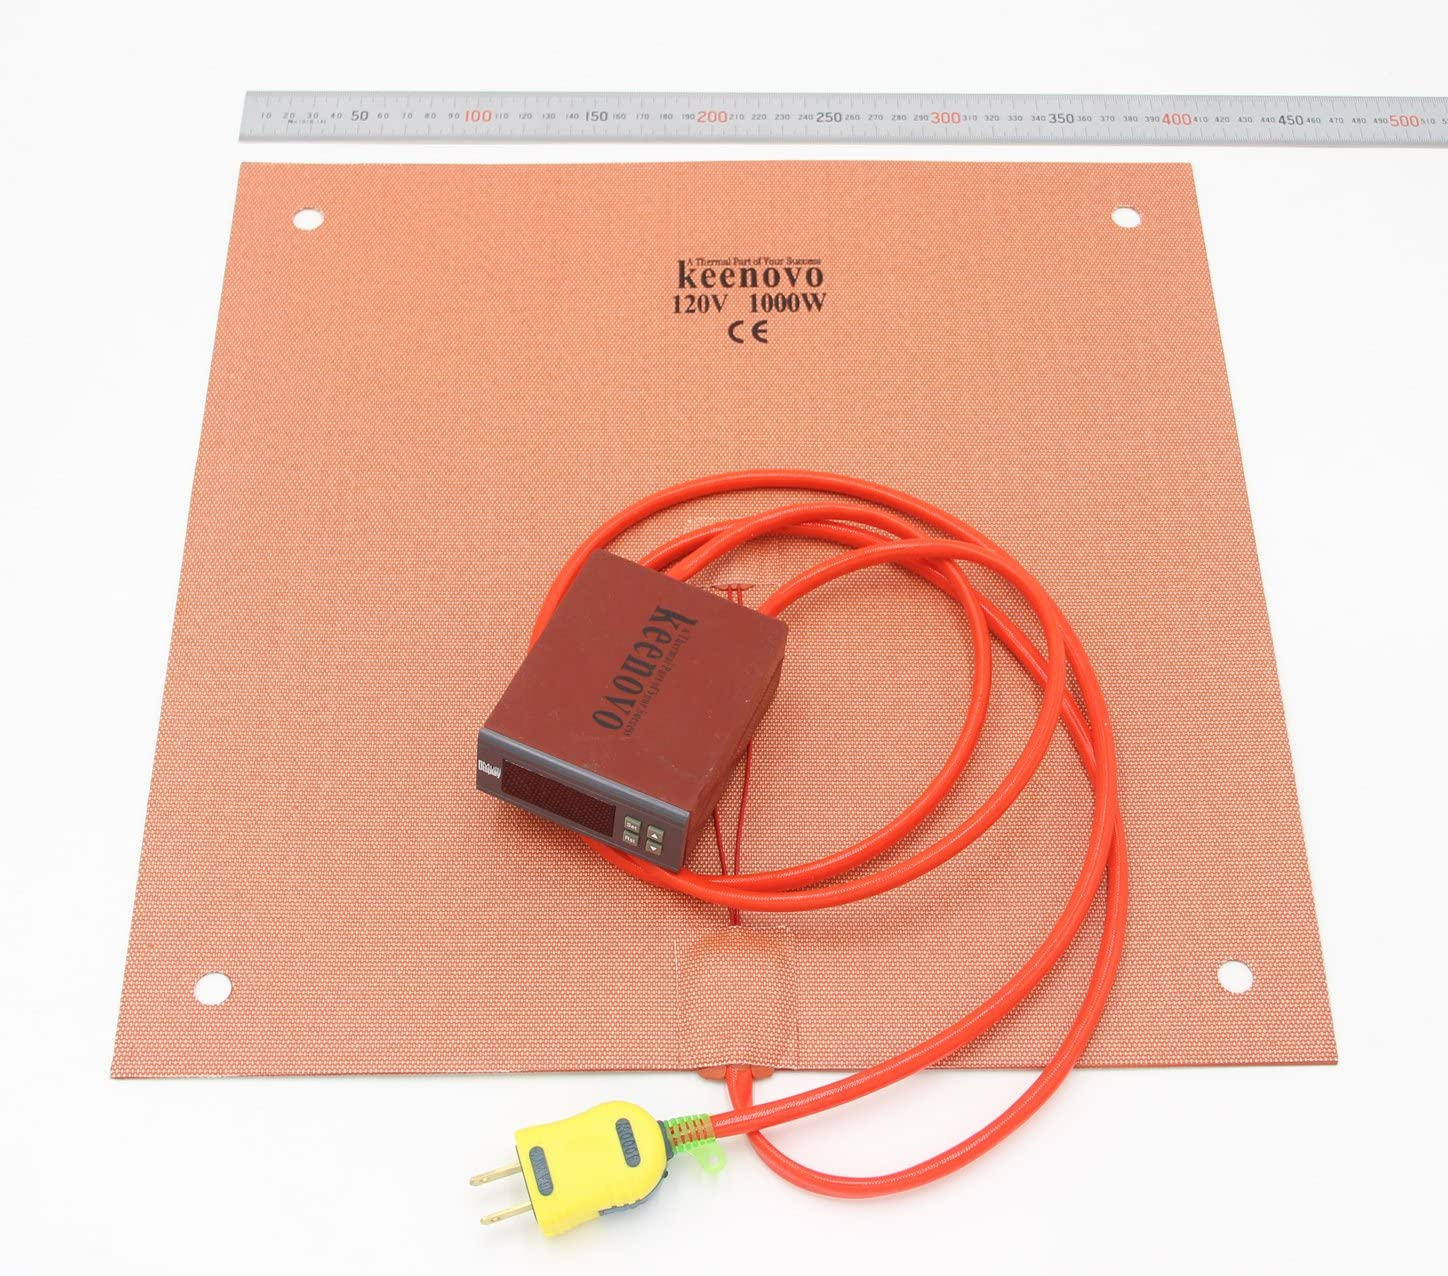 KEENOVO Silicone Heater 400x400mm 1000W for Creality CR-10 S4 3D Printer HeatedBed w/Digital Controller & Pre-made Screw Holes (120V)